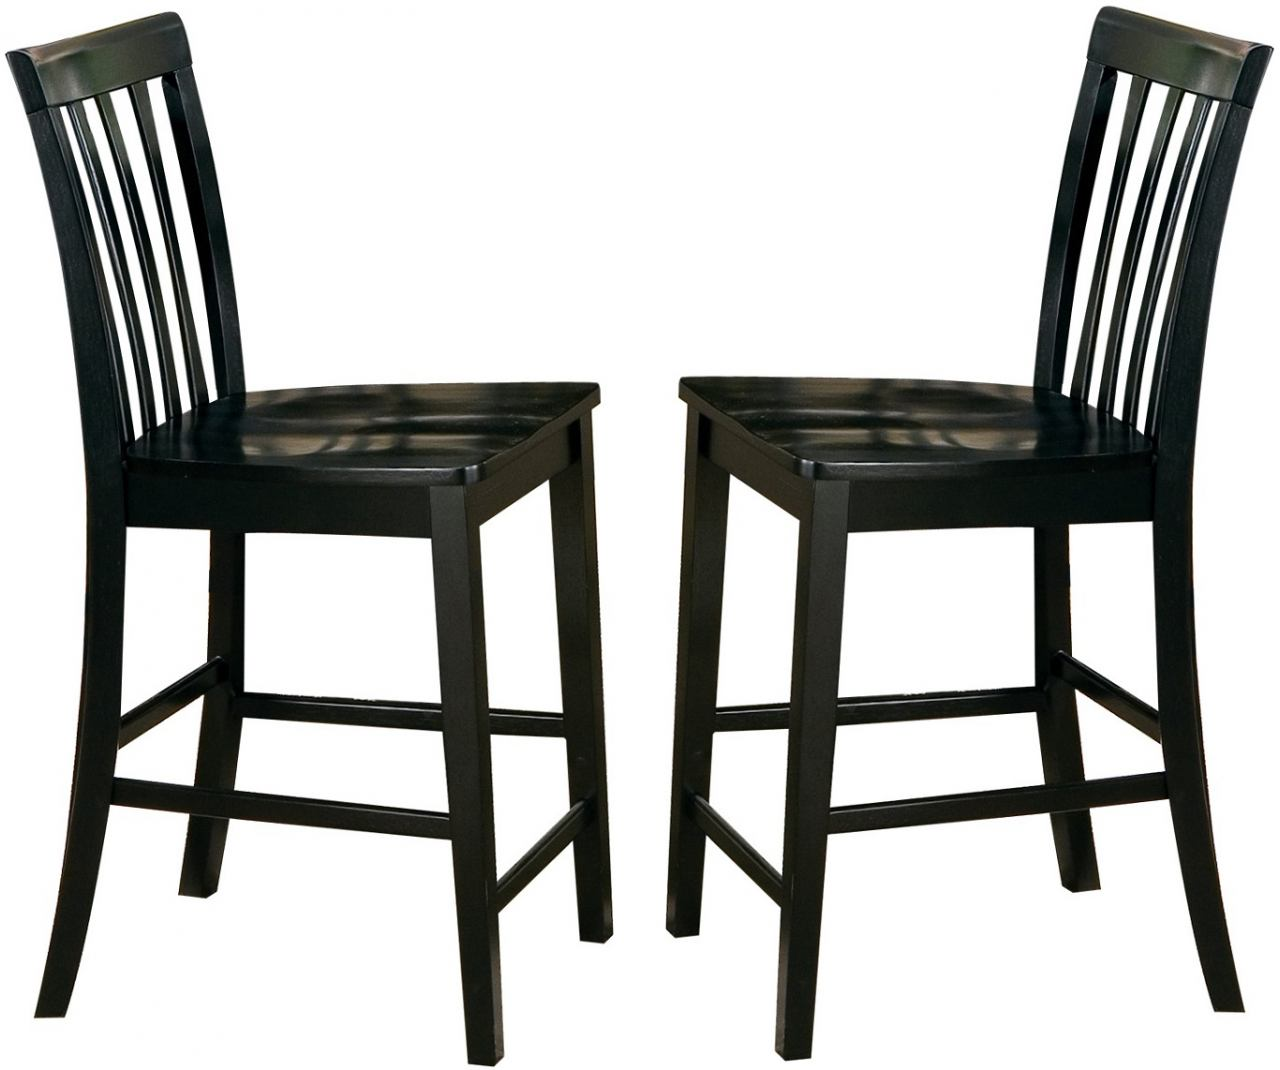 Coaster Pines Counter Height Stool in Black (Set of 2) 101039BLK